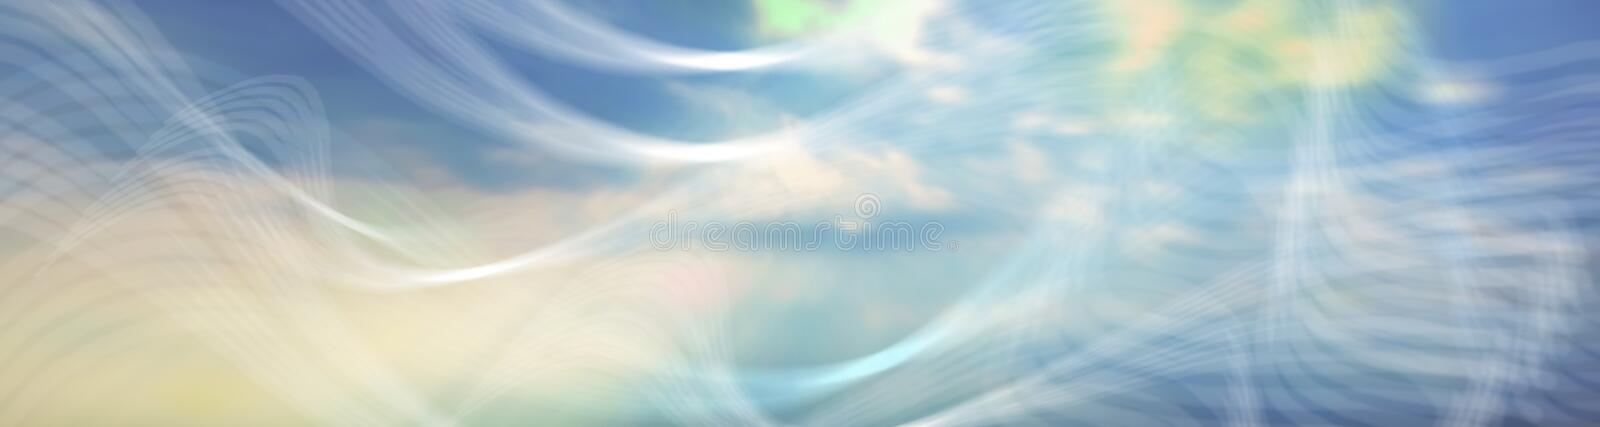 Ethereal Banner # 5 royalty free illustration